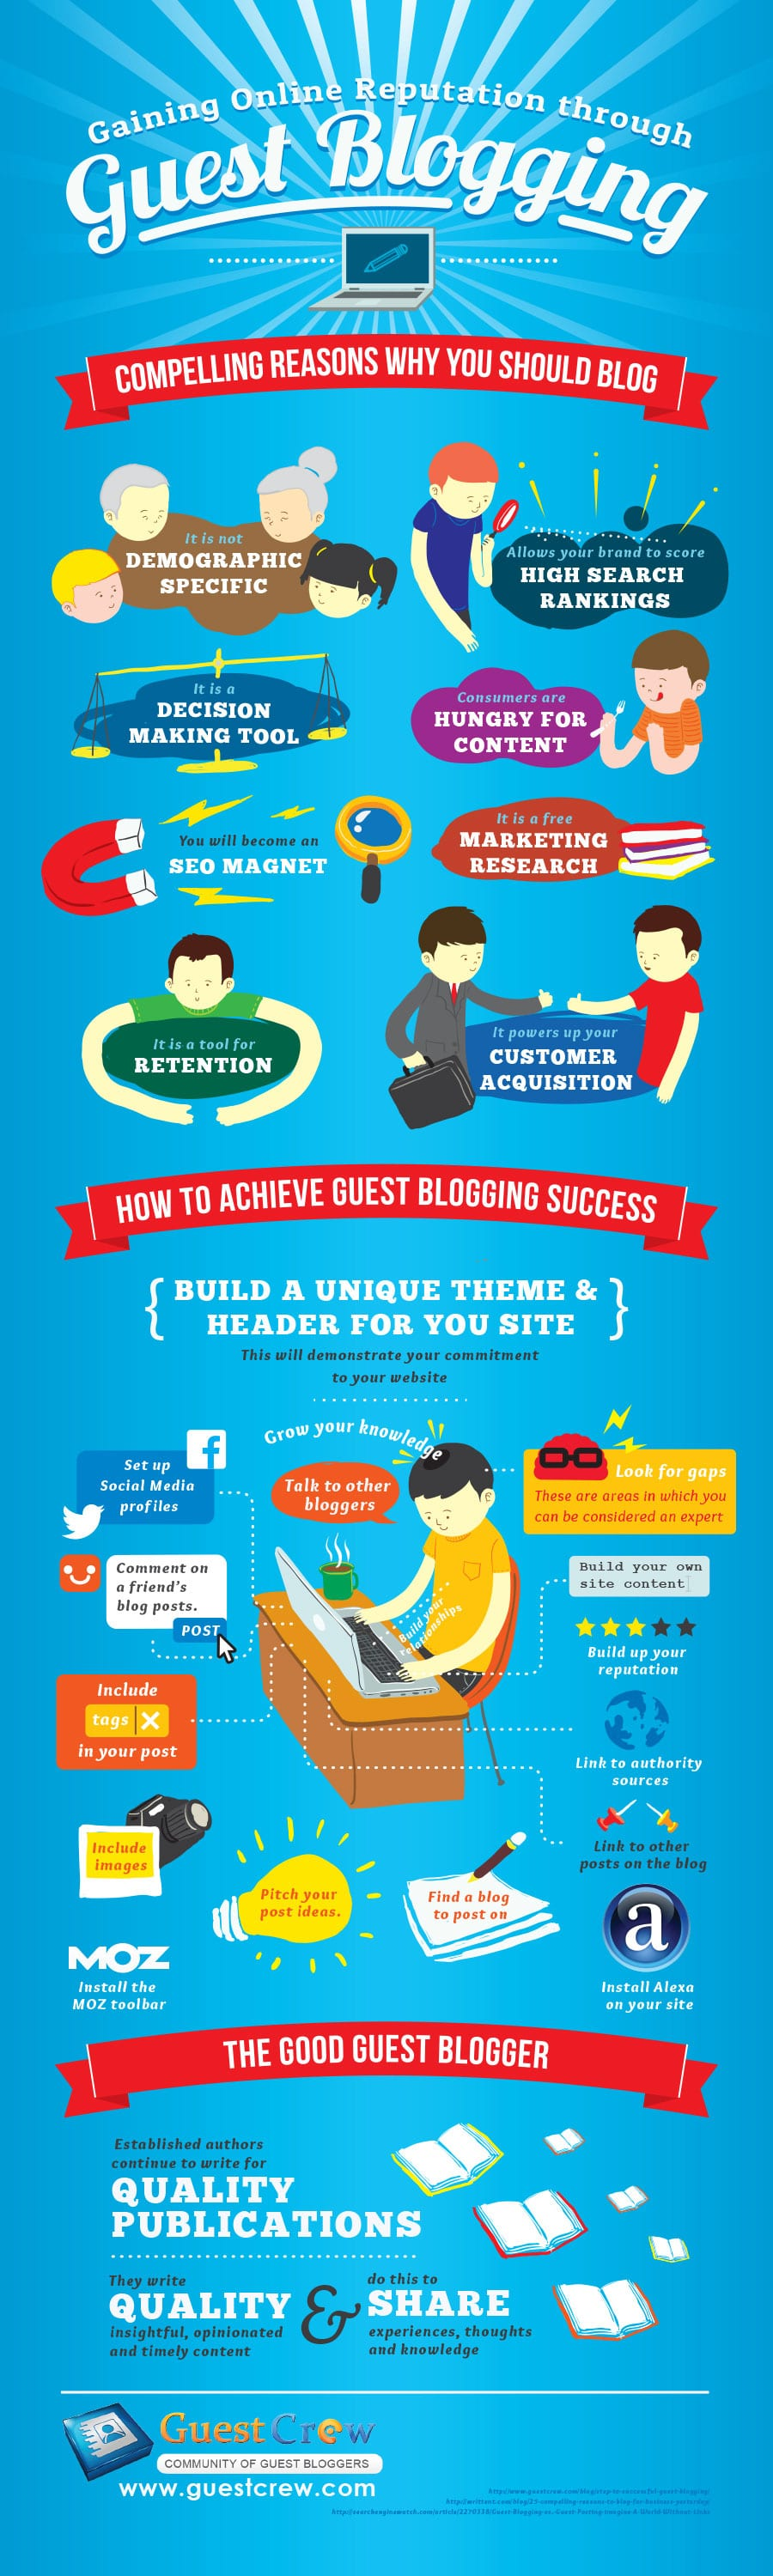 Increase Your Online Influence Through Guest Blogging [Infographic]